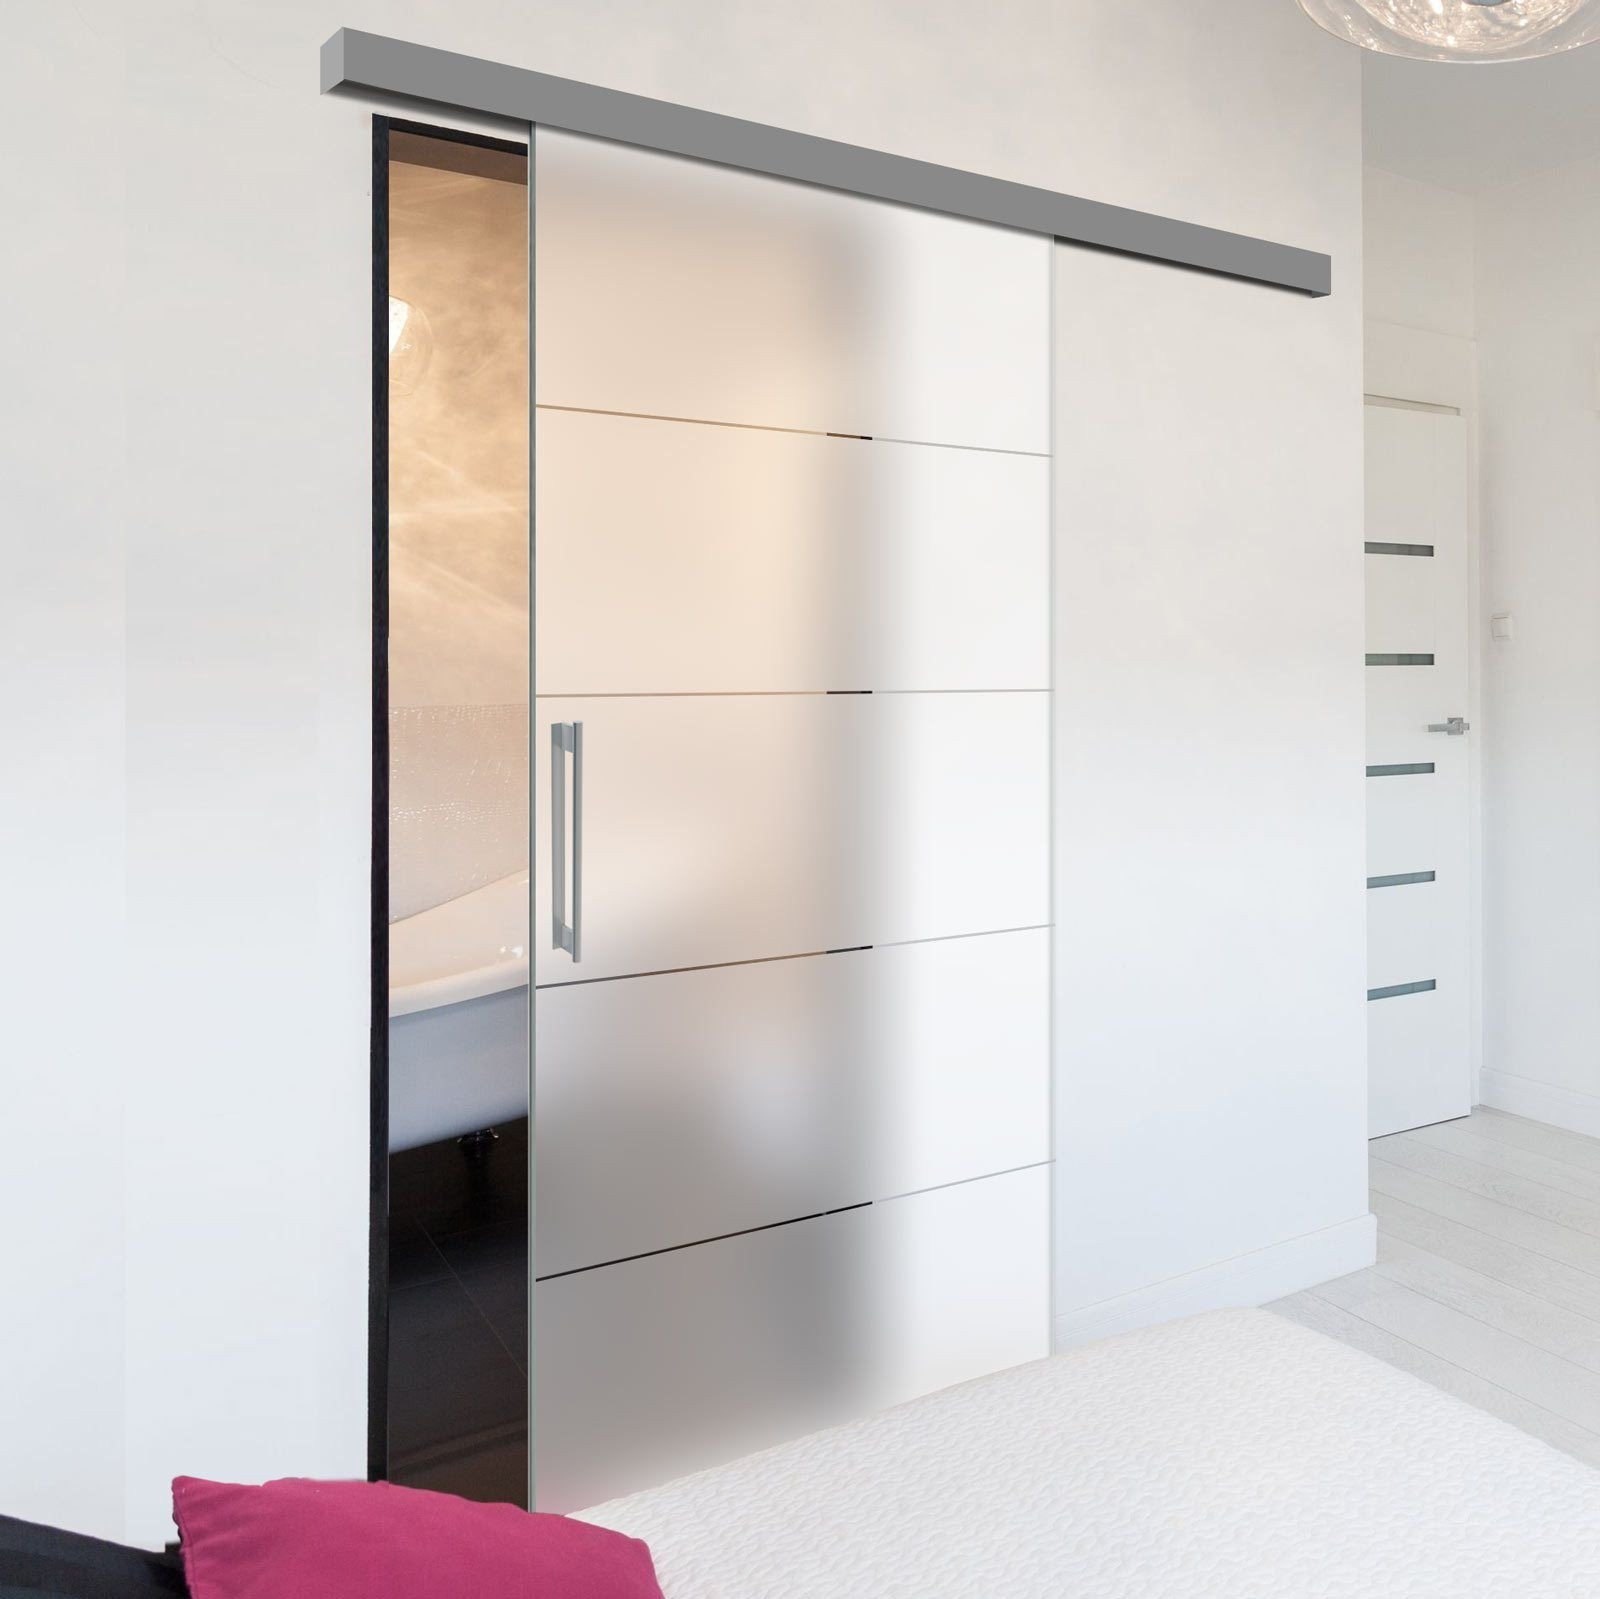 Sliding Doors for Bedroom Unique Single Glass Sliding Door Gullane 8mm Obscure Glass